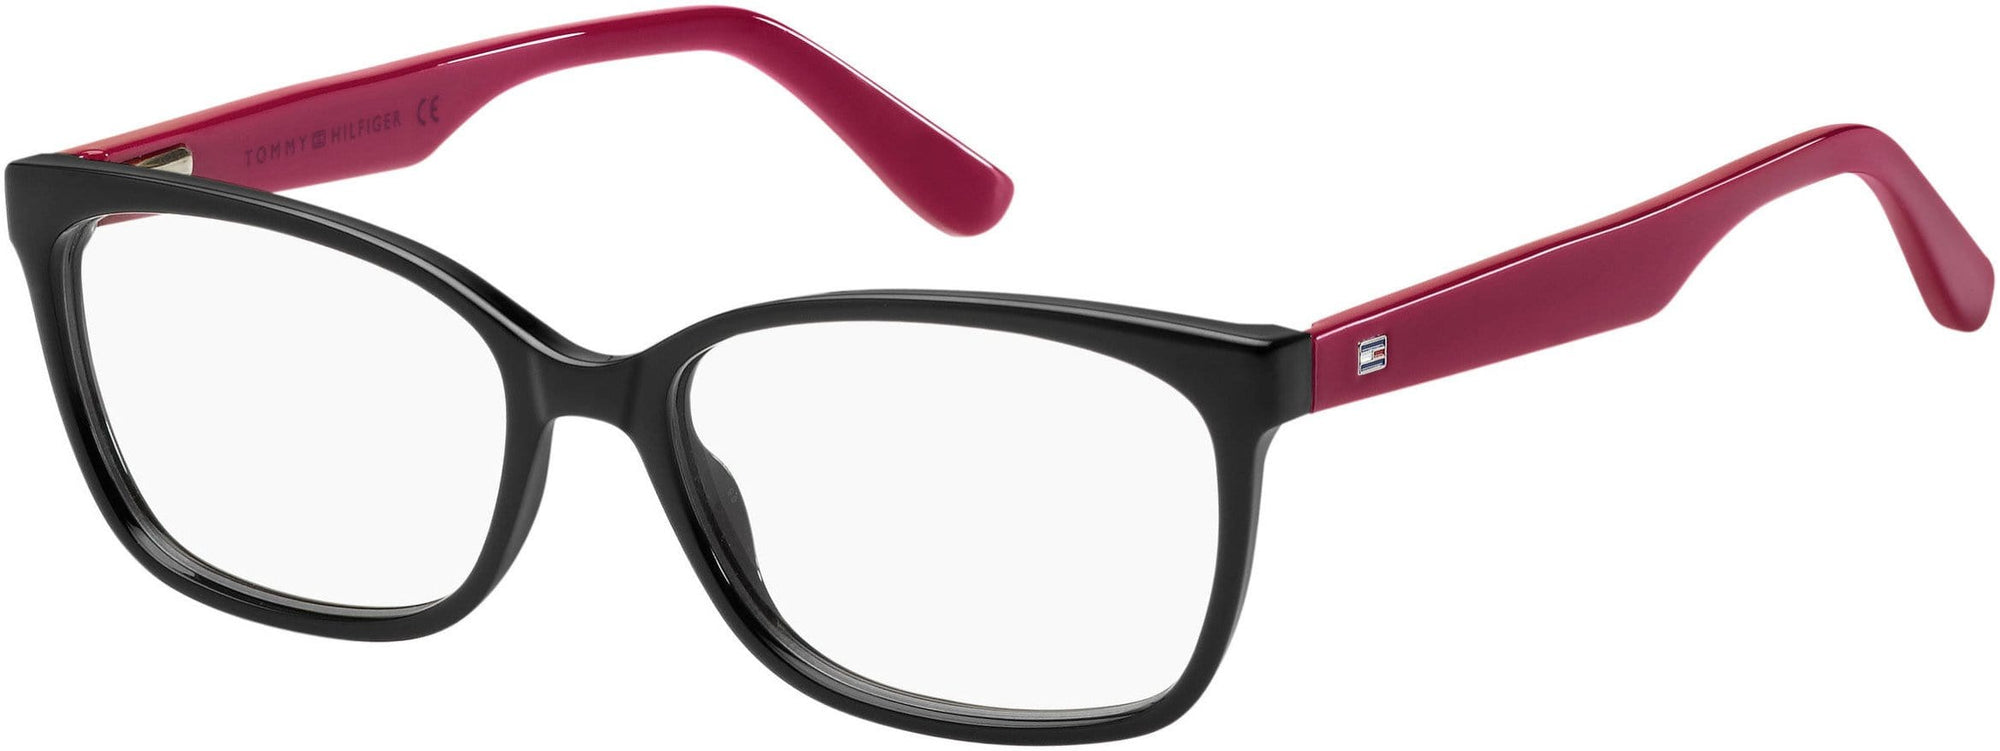 Eyeglasses Tommy Hilfiger Th 1492 0807 Black